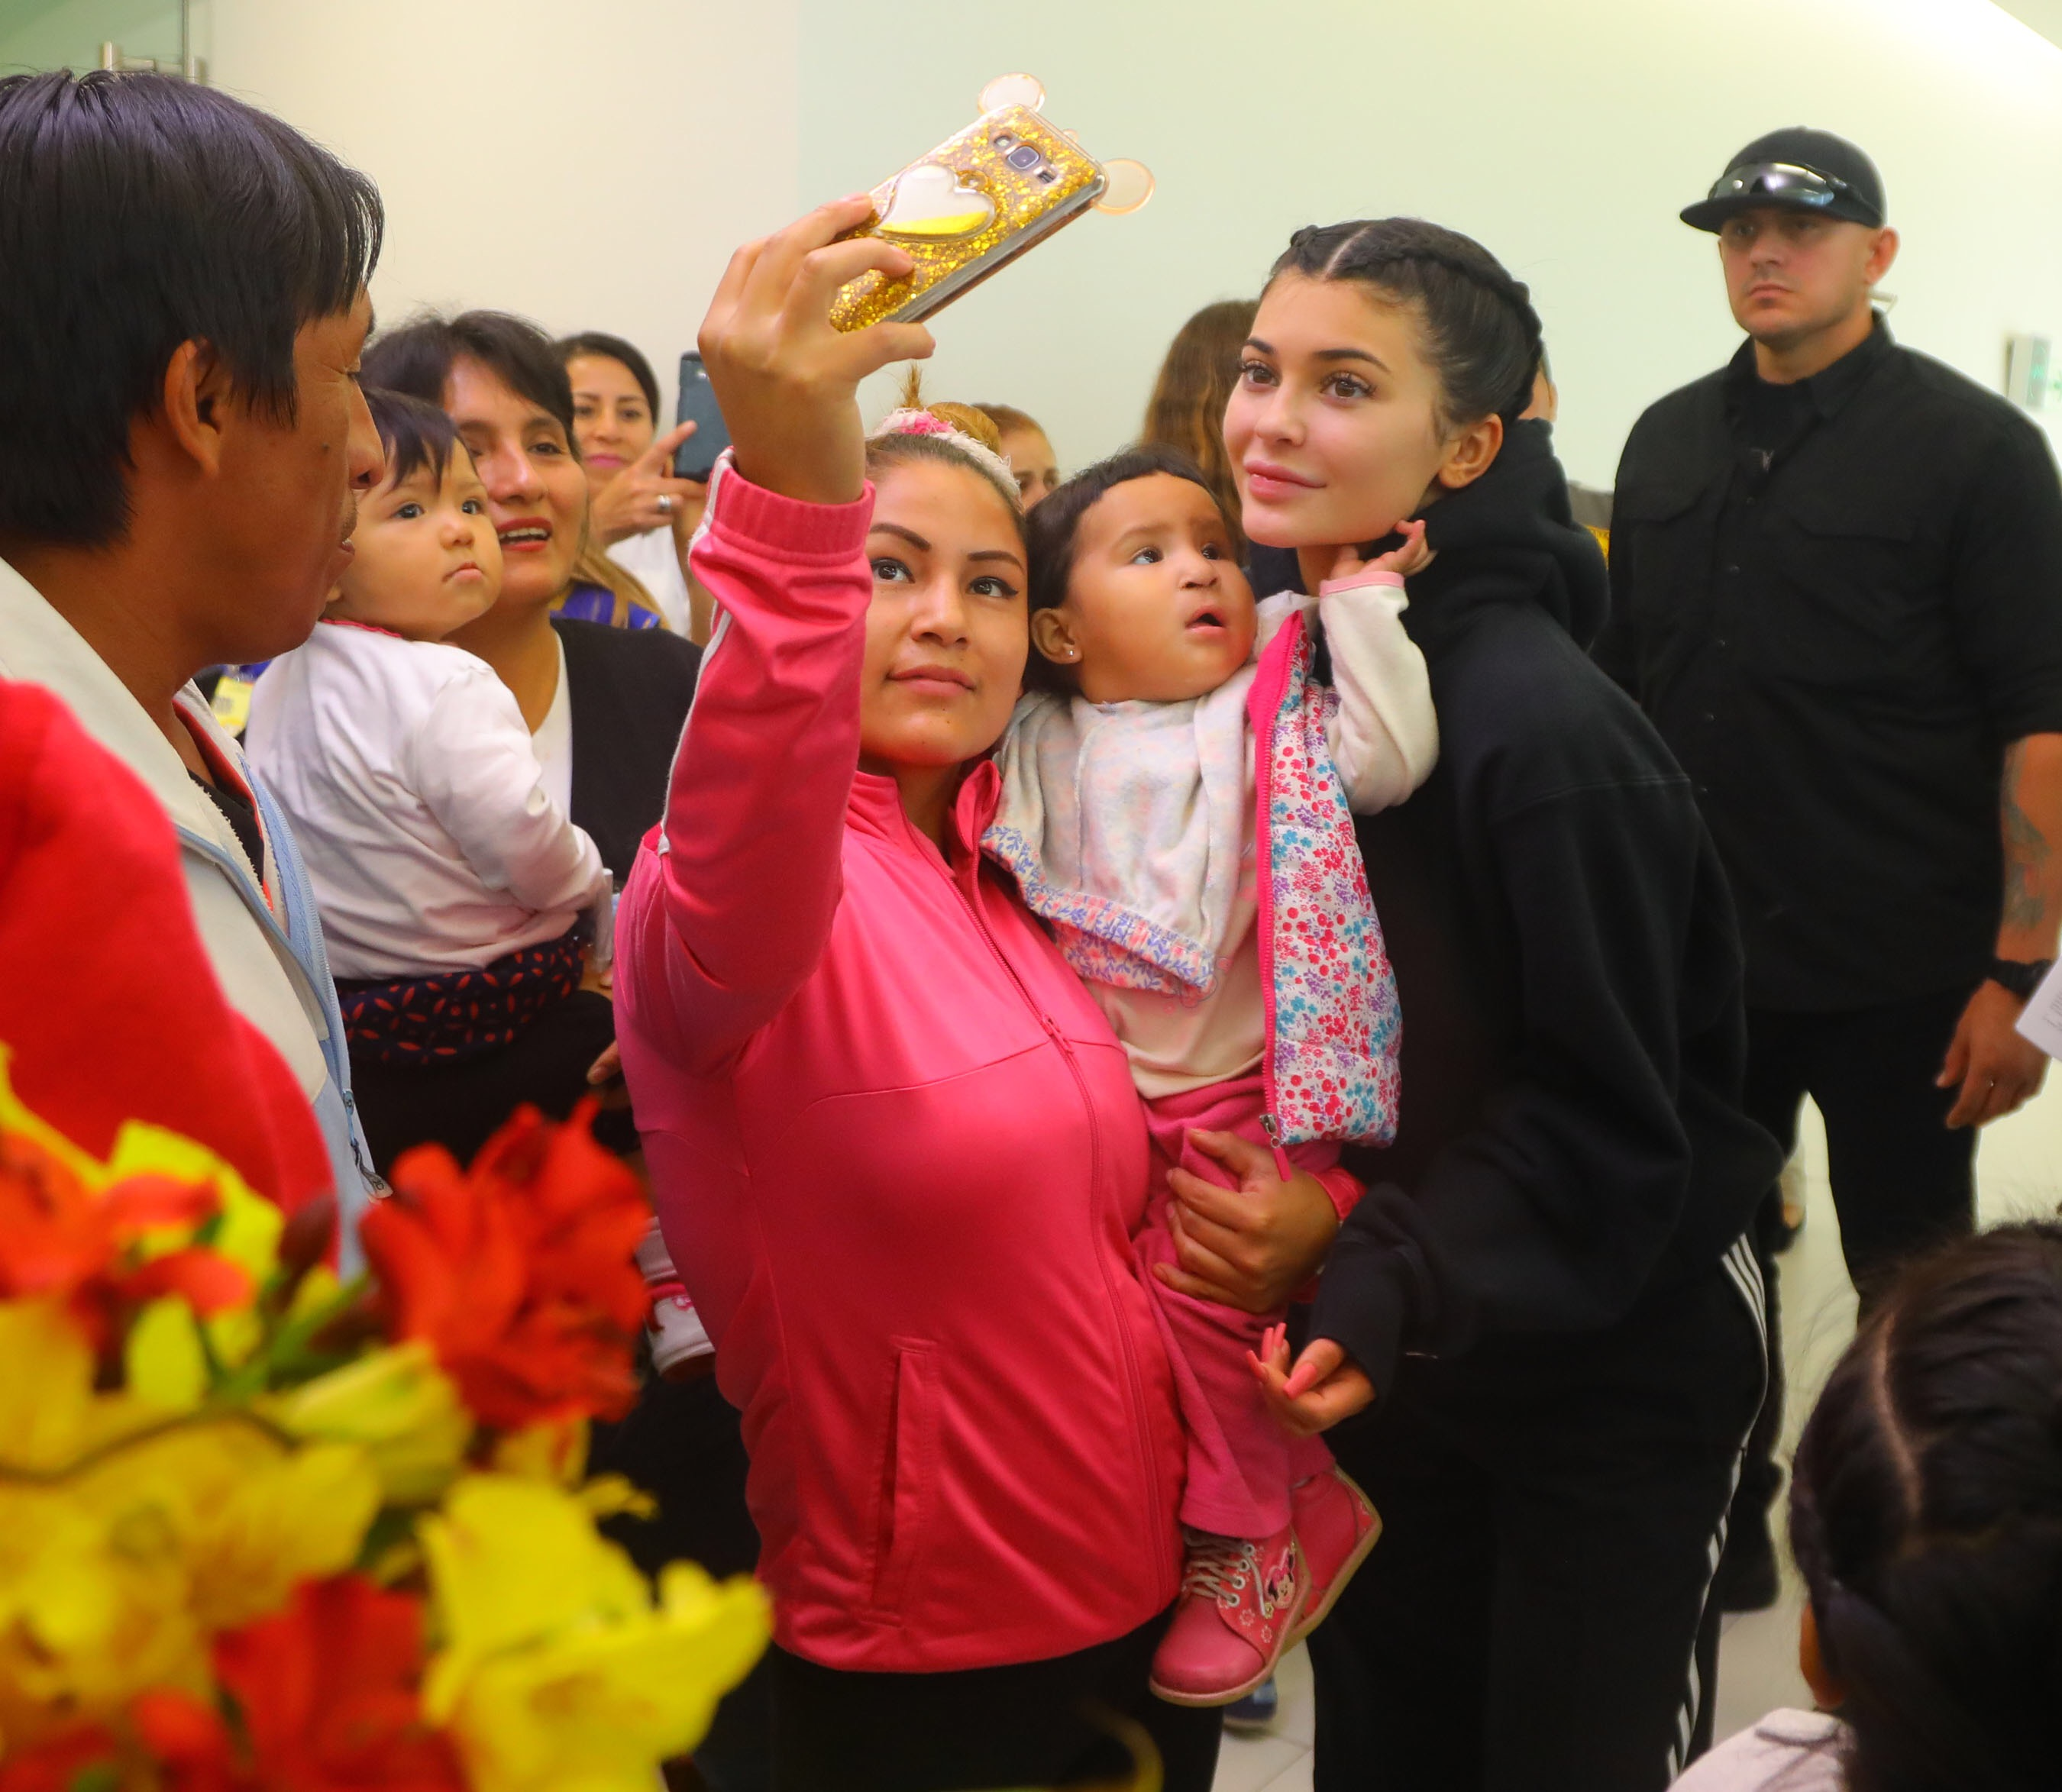 EXCLUSIVE Kylie Jenner is All Smiles Visiting a Hospital in Peru